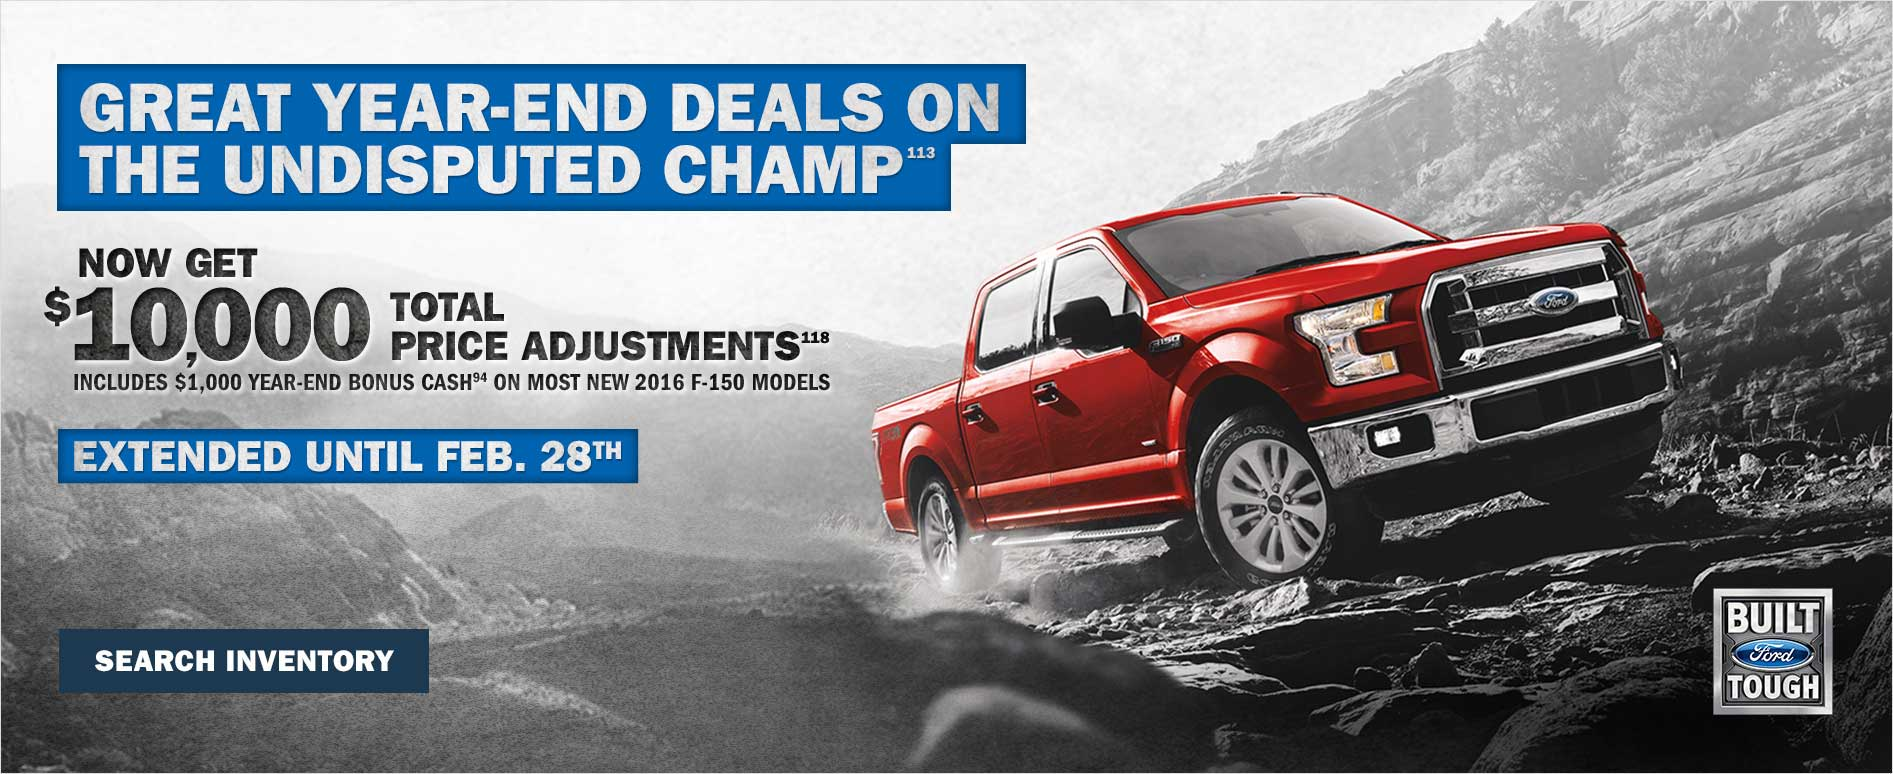 Coastal Ford Burnaby >> Burnaby Ford Dealership Serving Burnaby, BC | Ford Dealer | Coastal Ford Burnaby